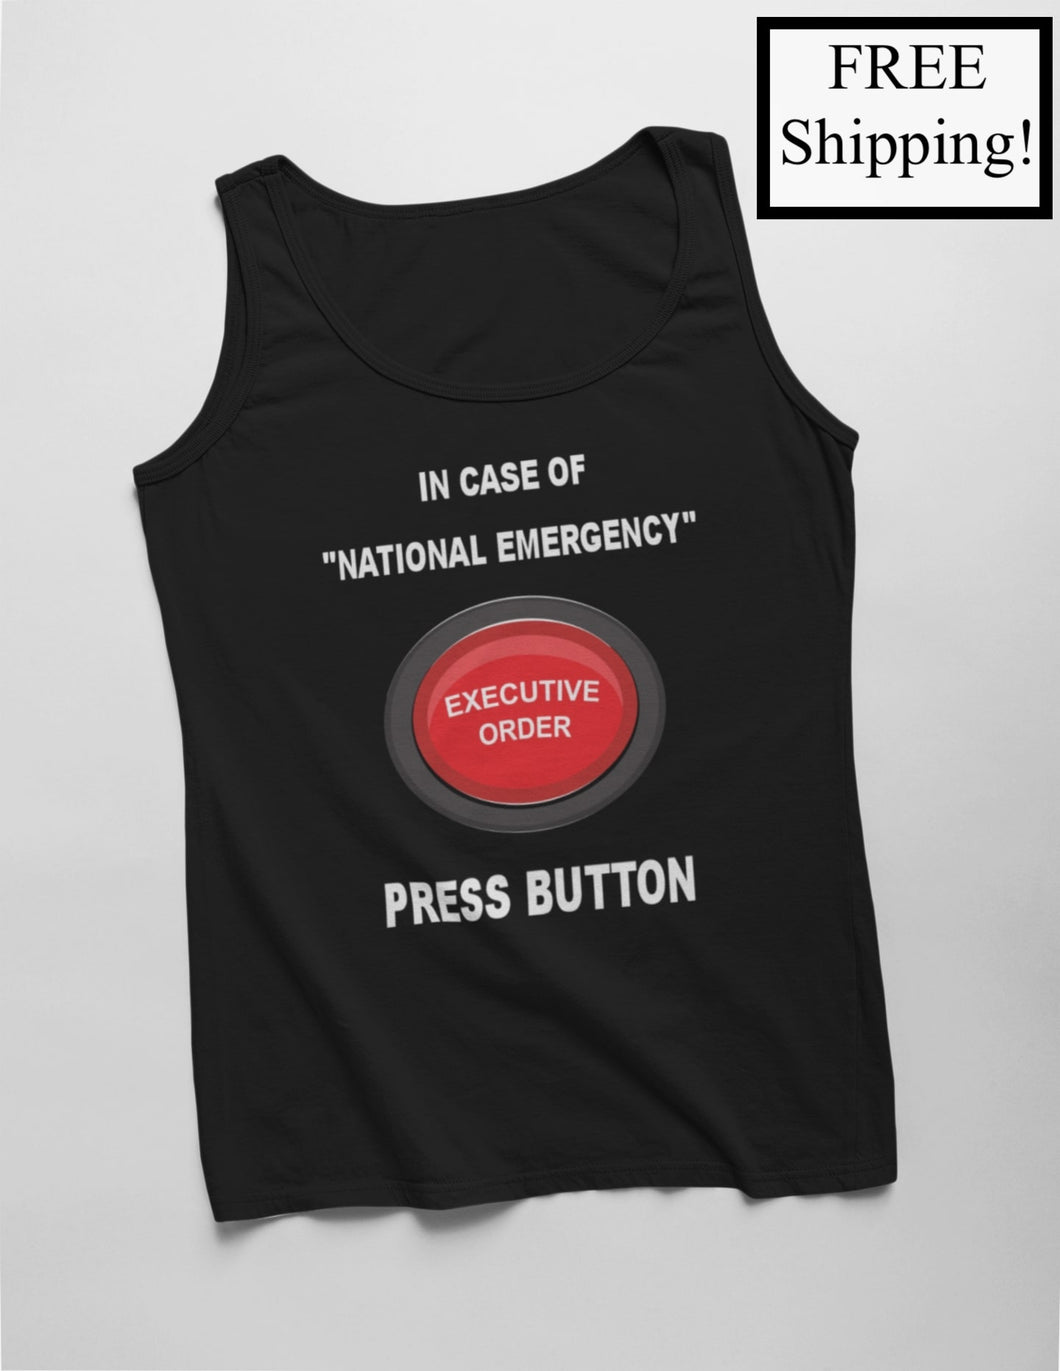 In Case of National Emergency Tank Top